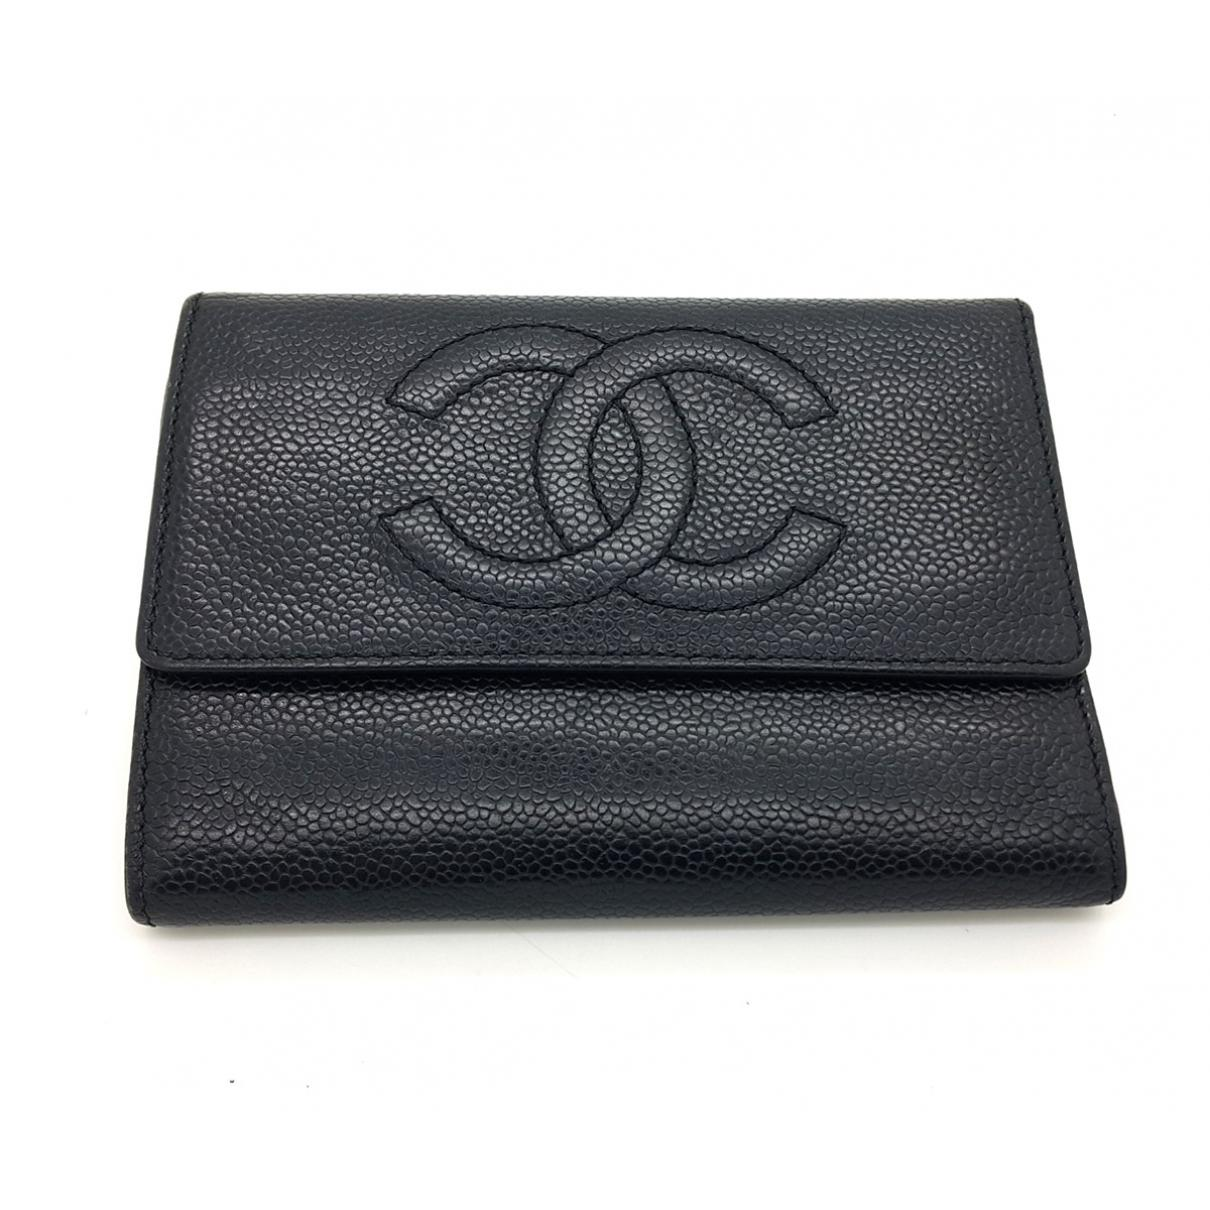 8e8317522c Lyst - Chanel Pre-owned Vintage Black Leather Wallets in Black